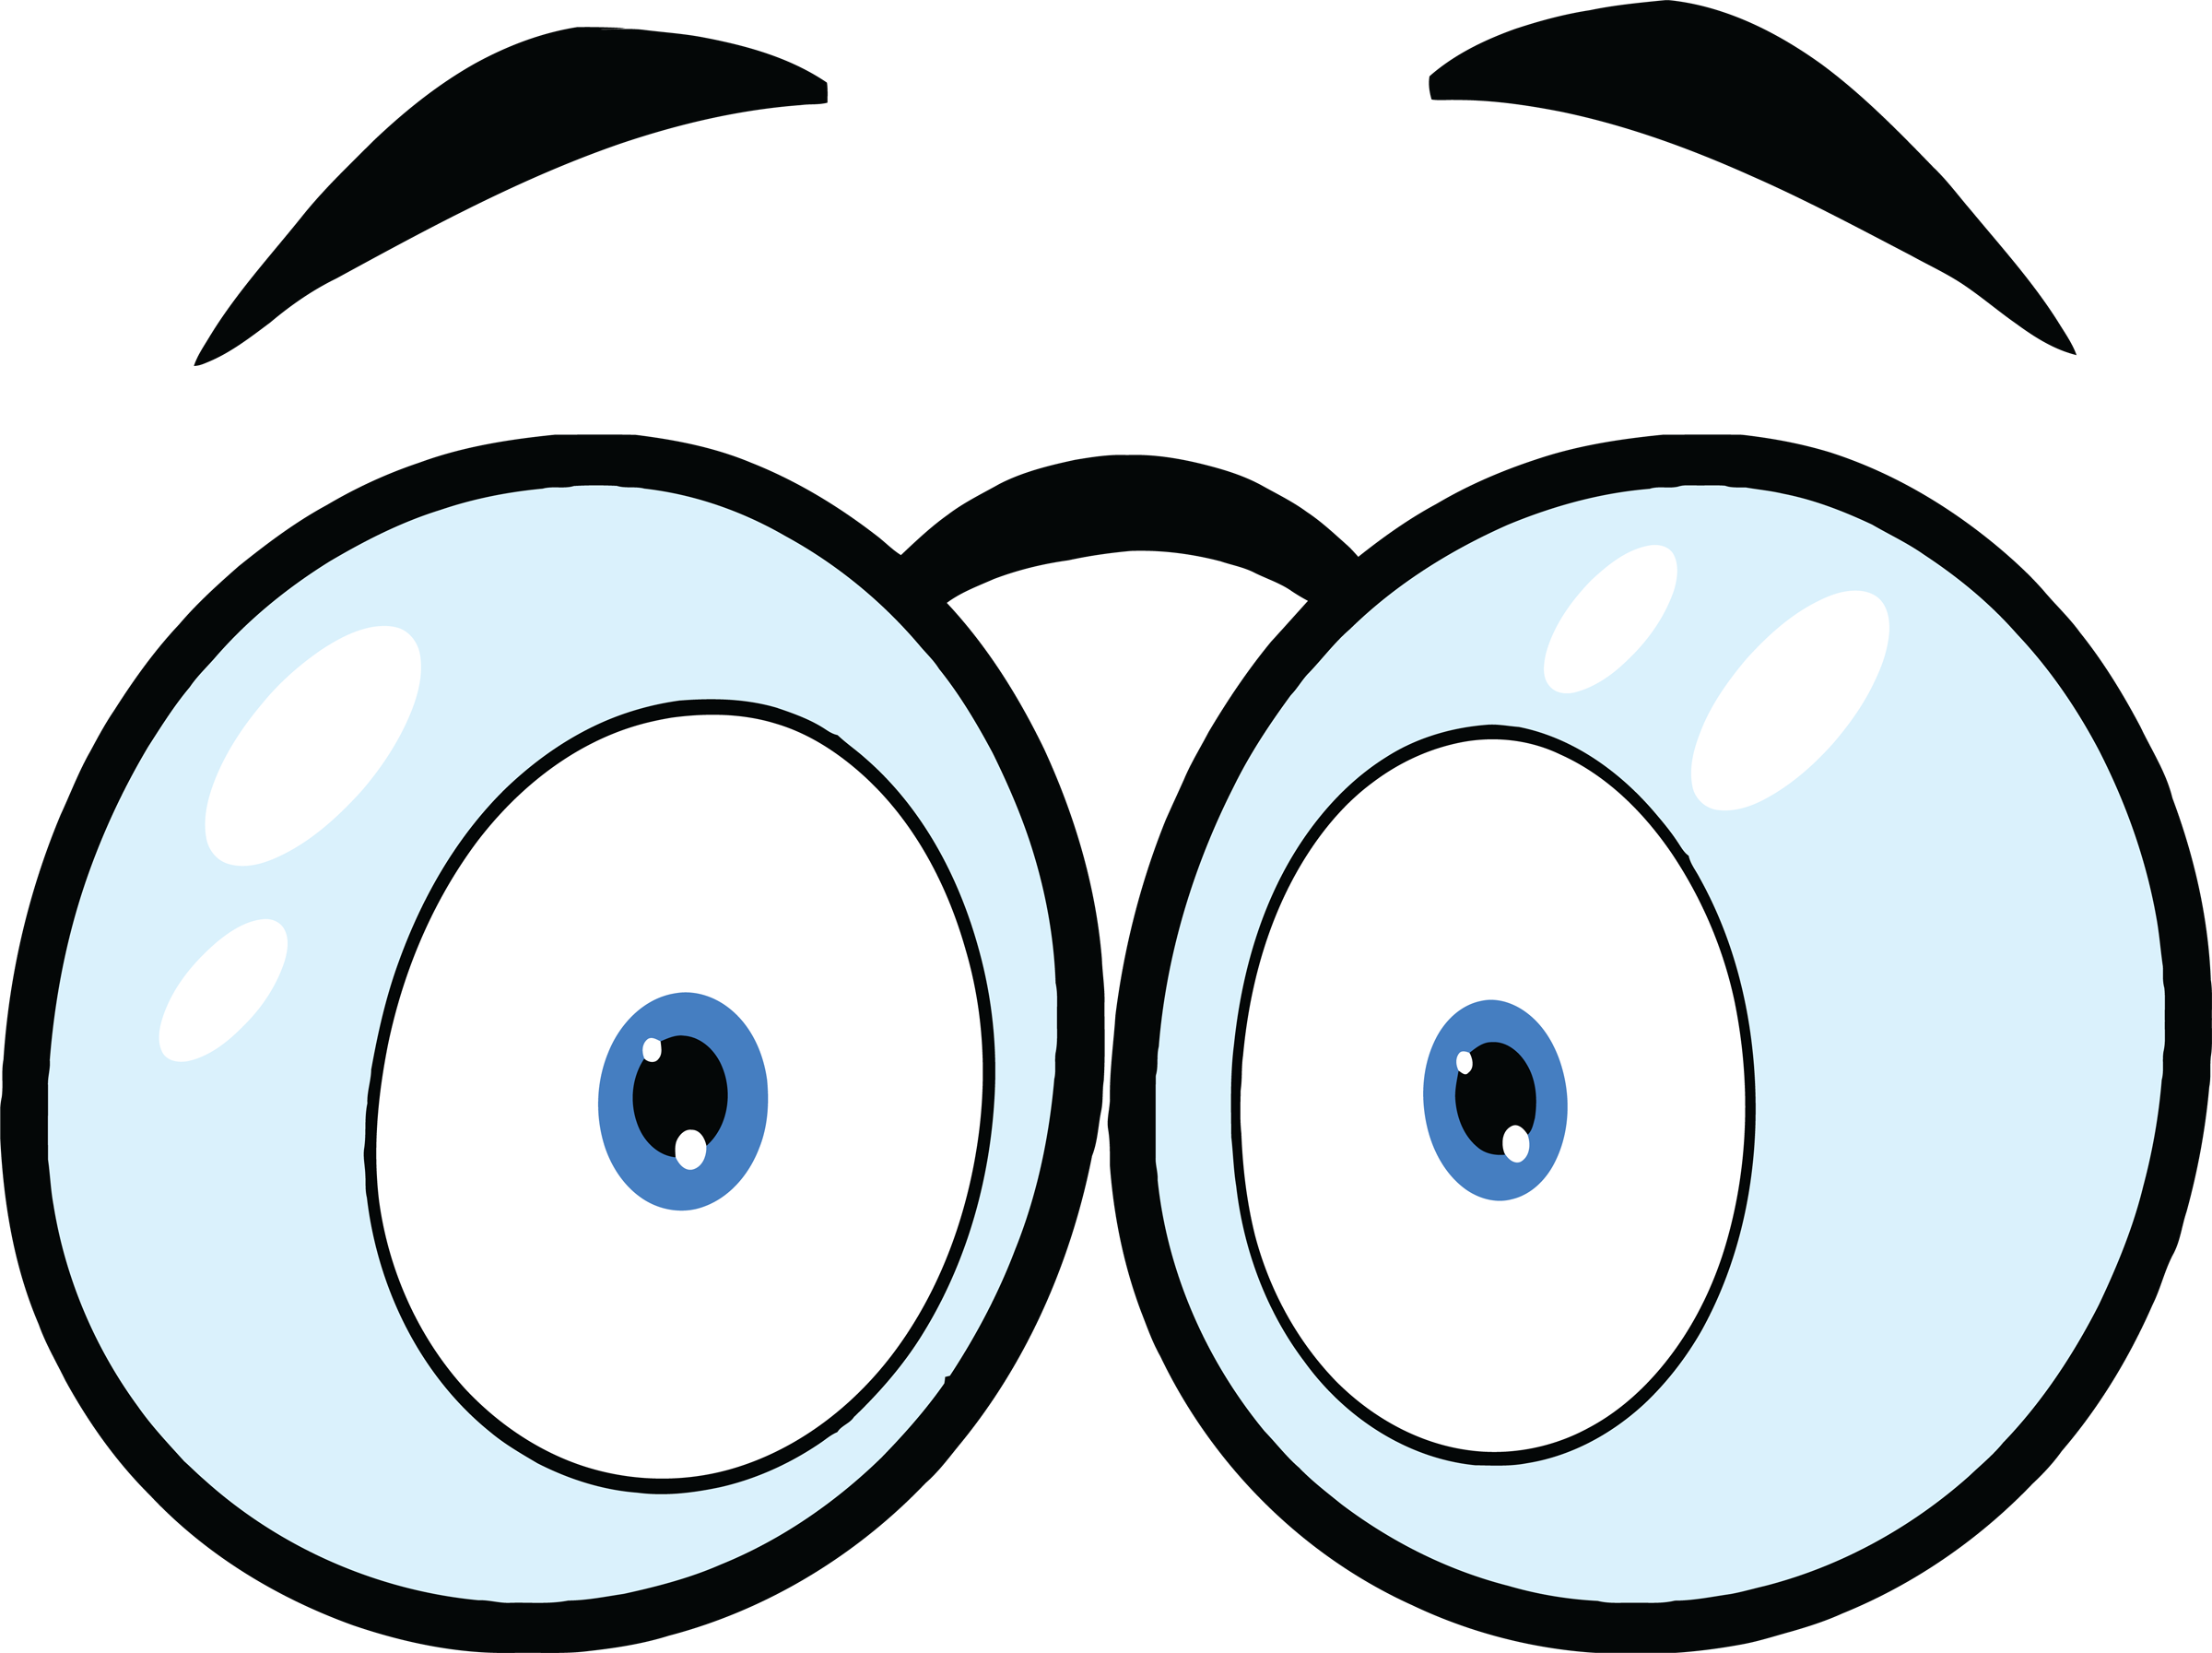 Books Cartoon Png Book Cartoon Eyes Clip Art